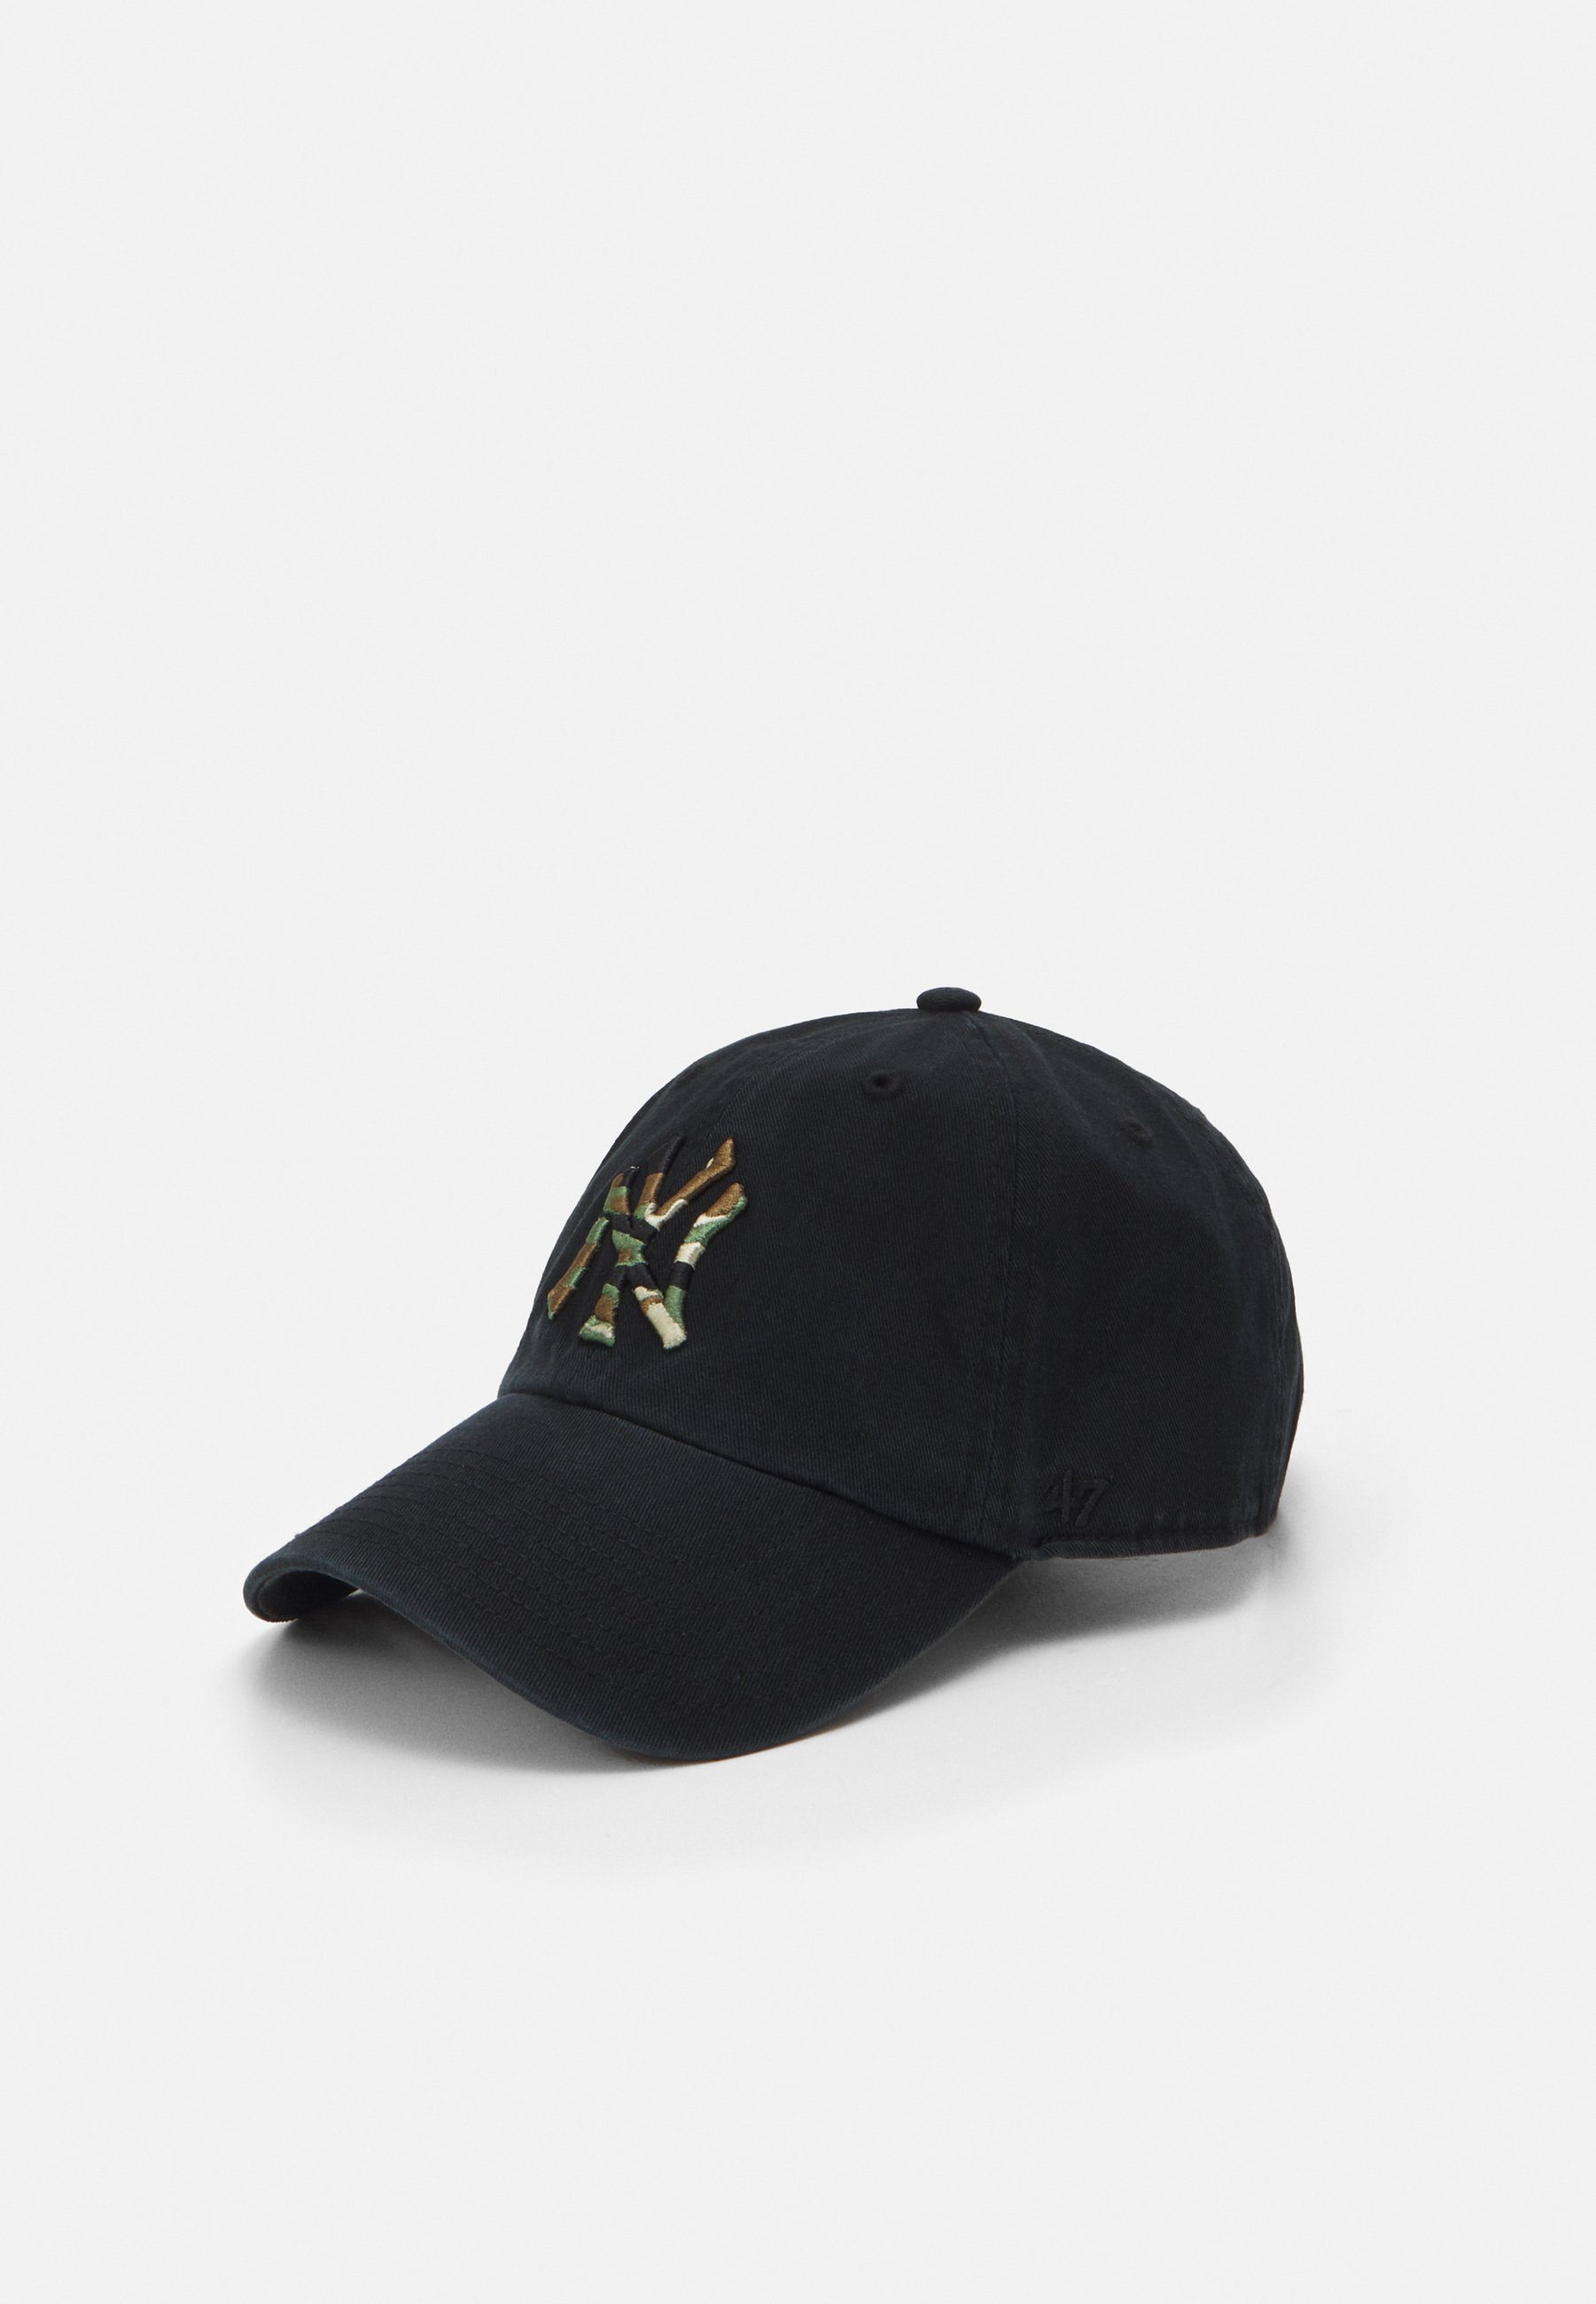 Homme NEW YORK YANKEES CAMFILL CLEAN UP UNISEX - Casquette